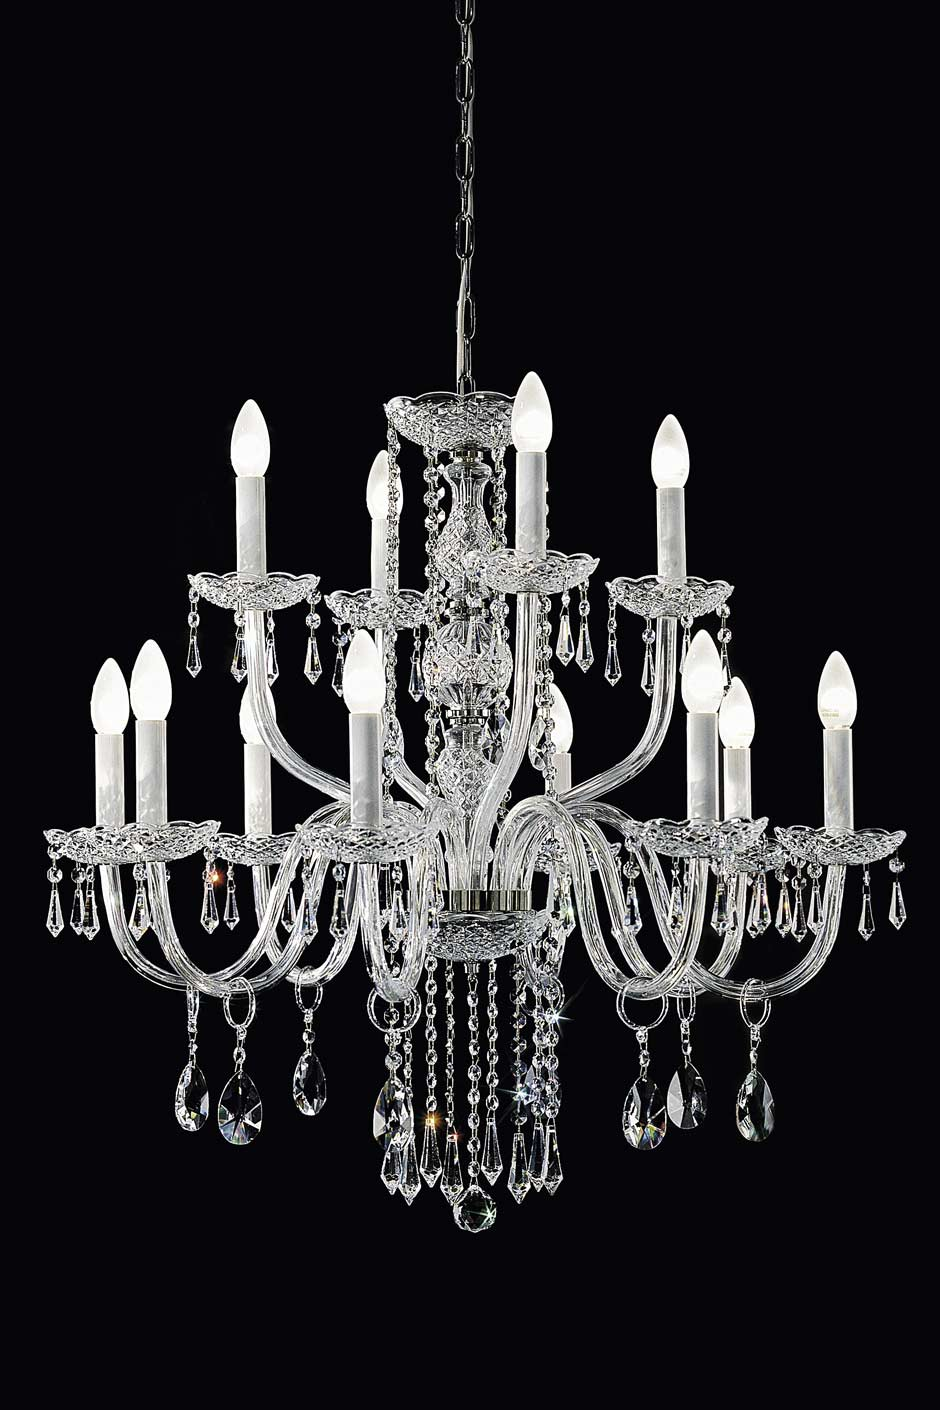 Crystal Chandeliers for Sale | Chandelier Crystals | Crystal Chandelier for Nursery